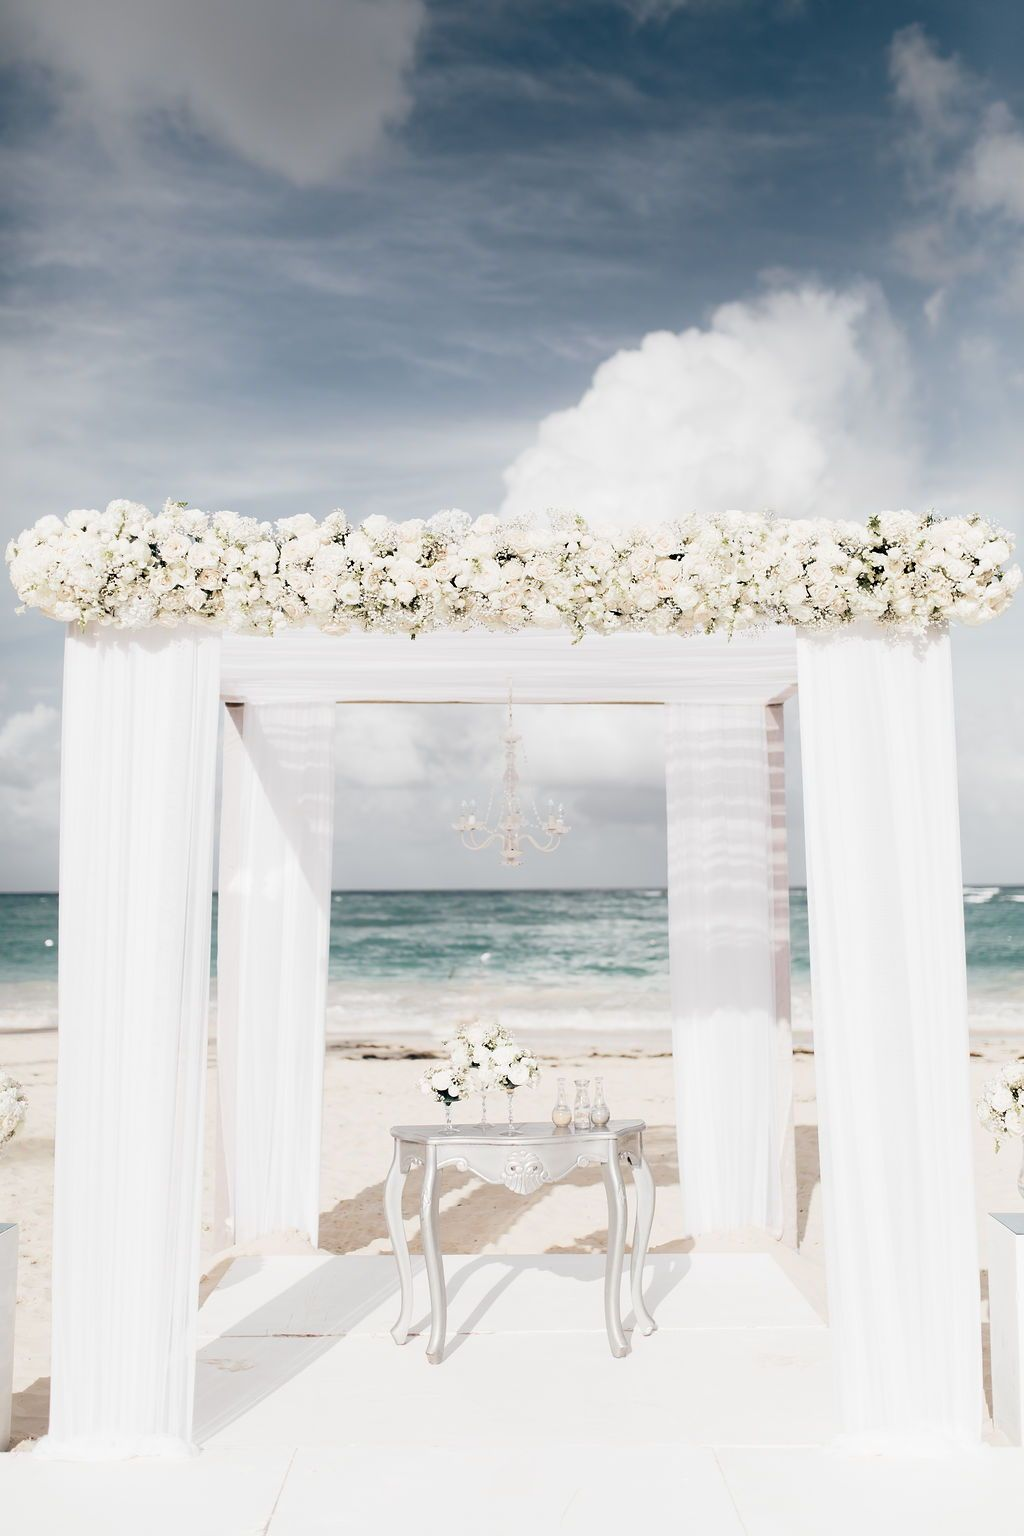 Pin On Wedding Gazebos And Arches